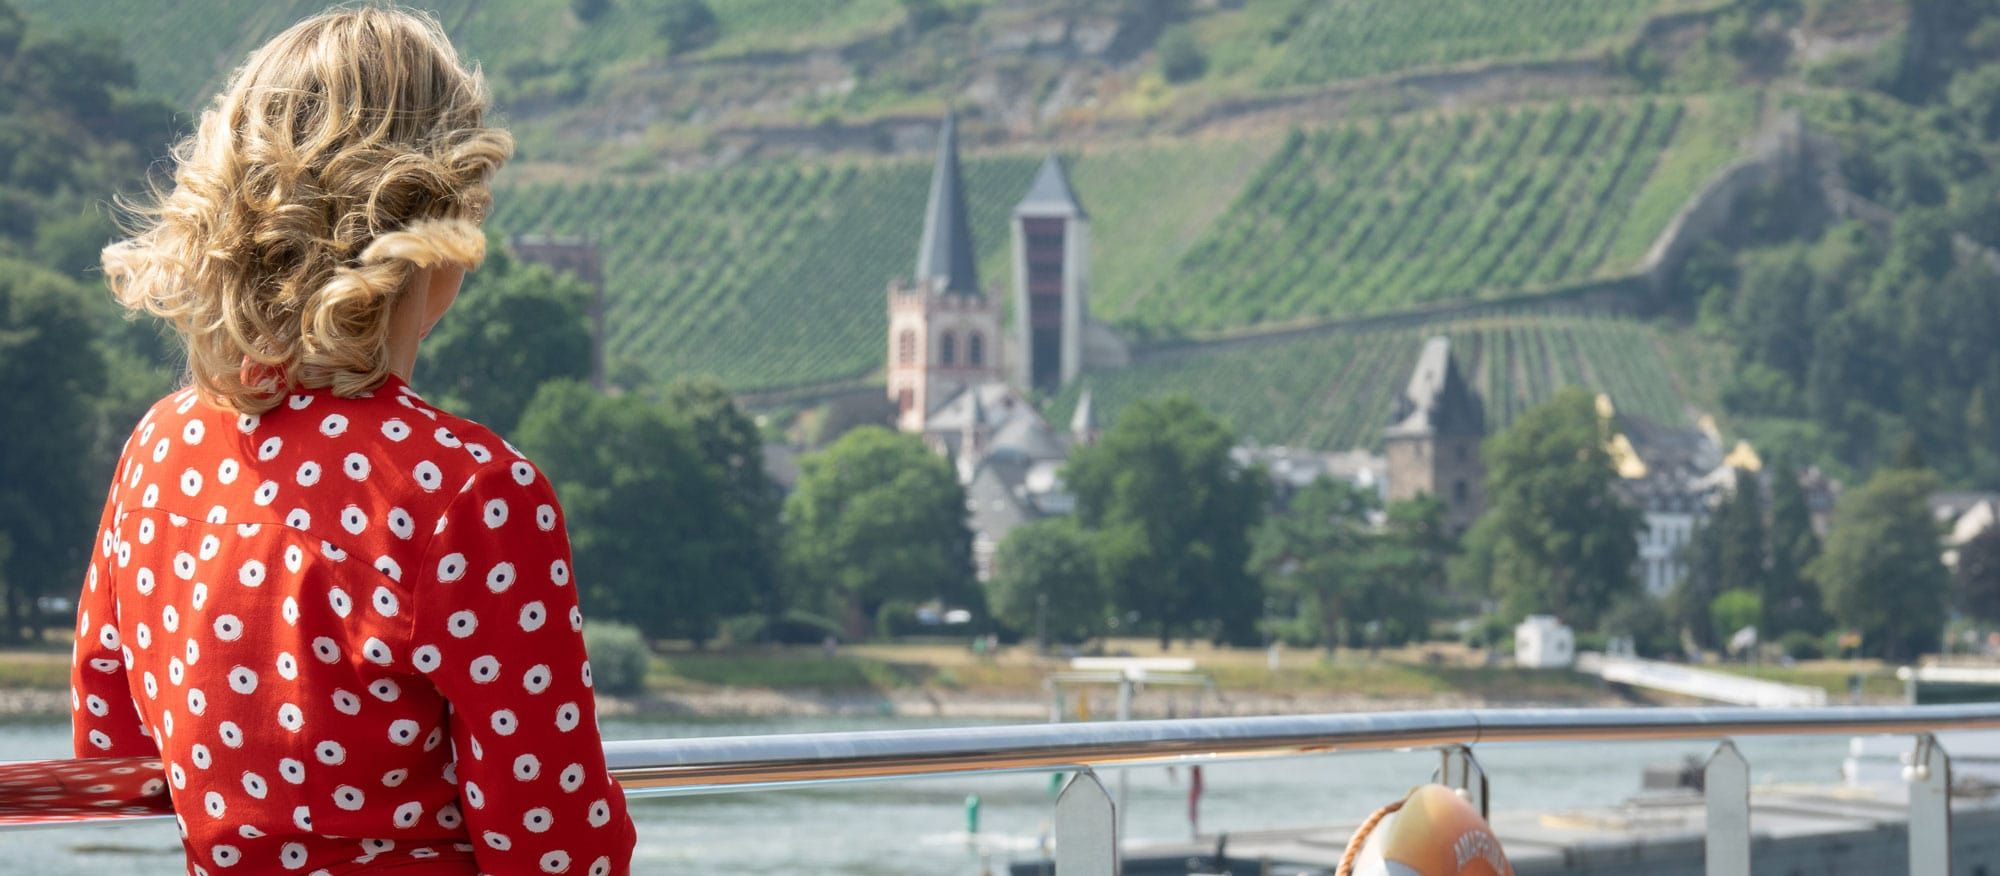 Rhine River Cruise - Samantha Browns Places to Love